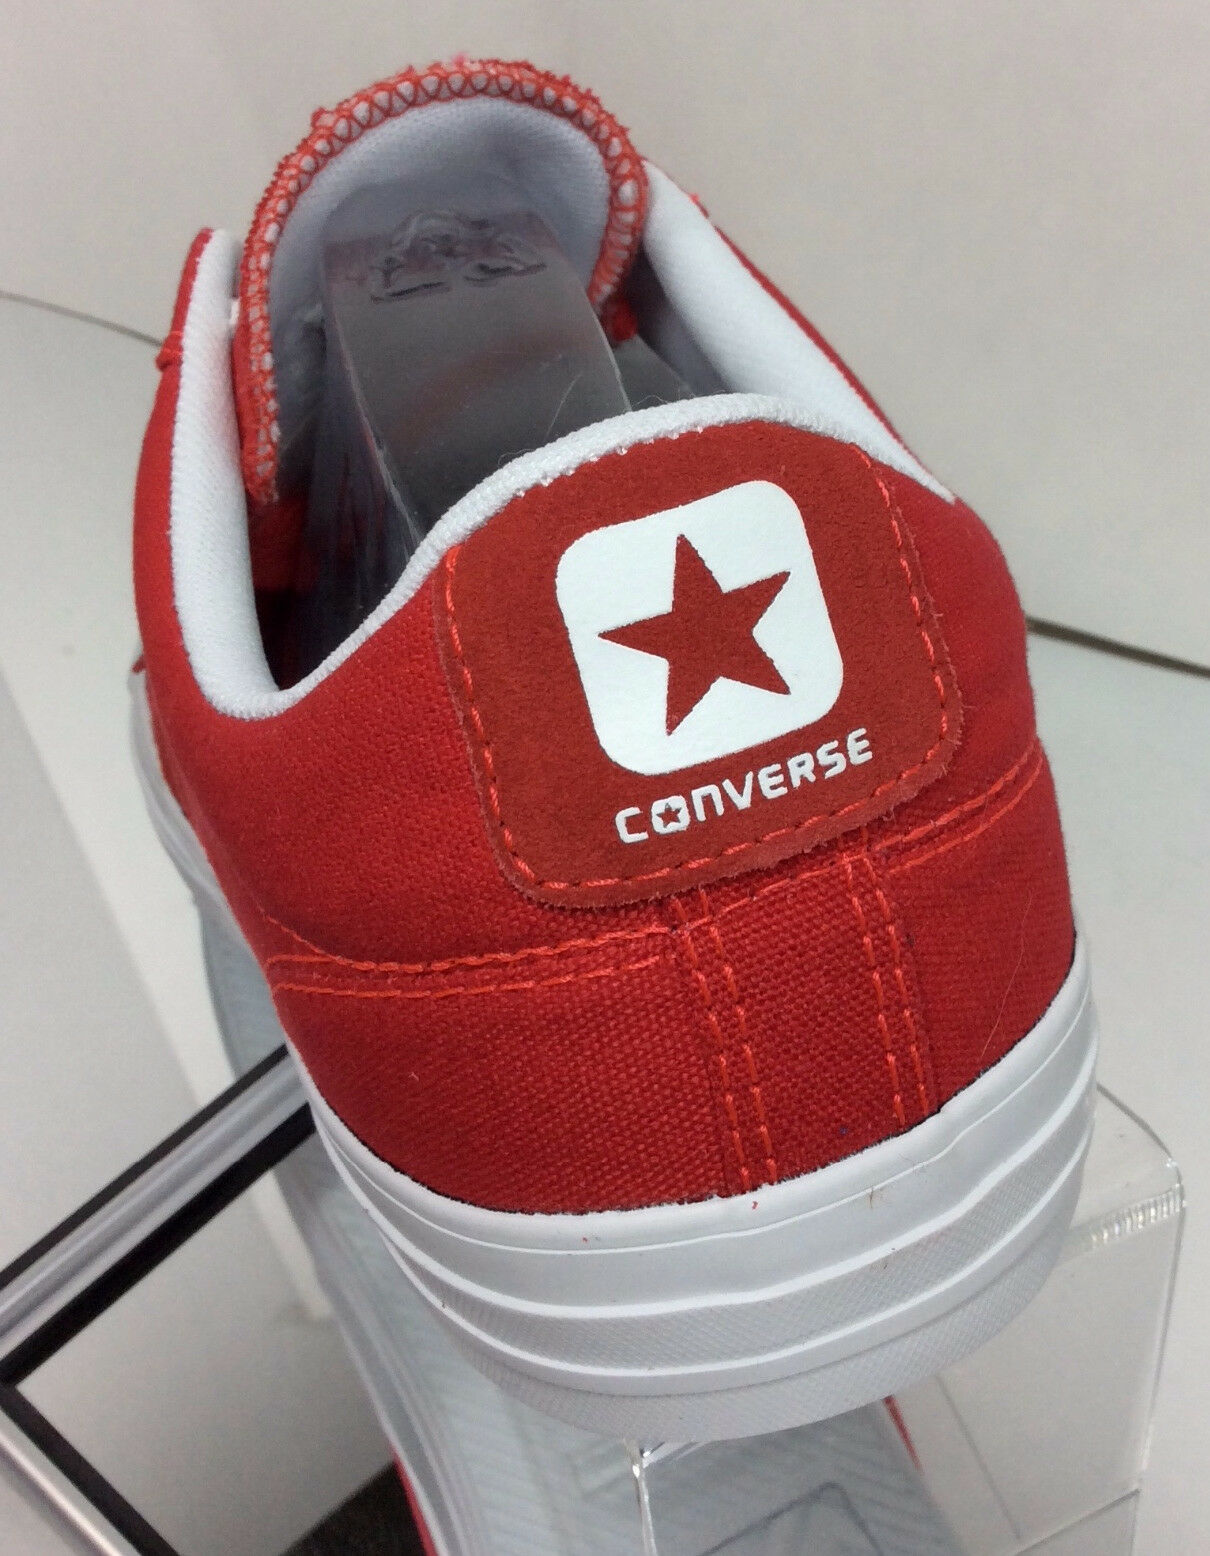 NEW CONVERSE Star Player Ox Red/White Canvas Trainers 142169C (Size 11.5)